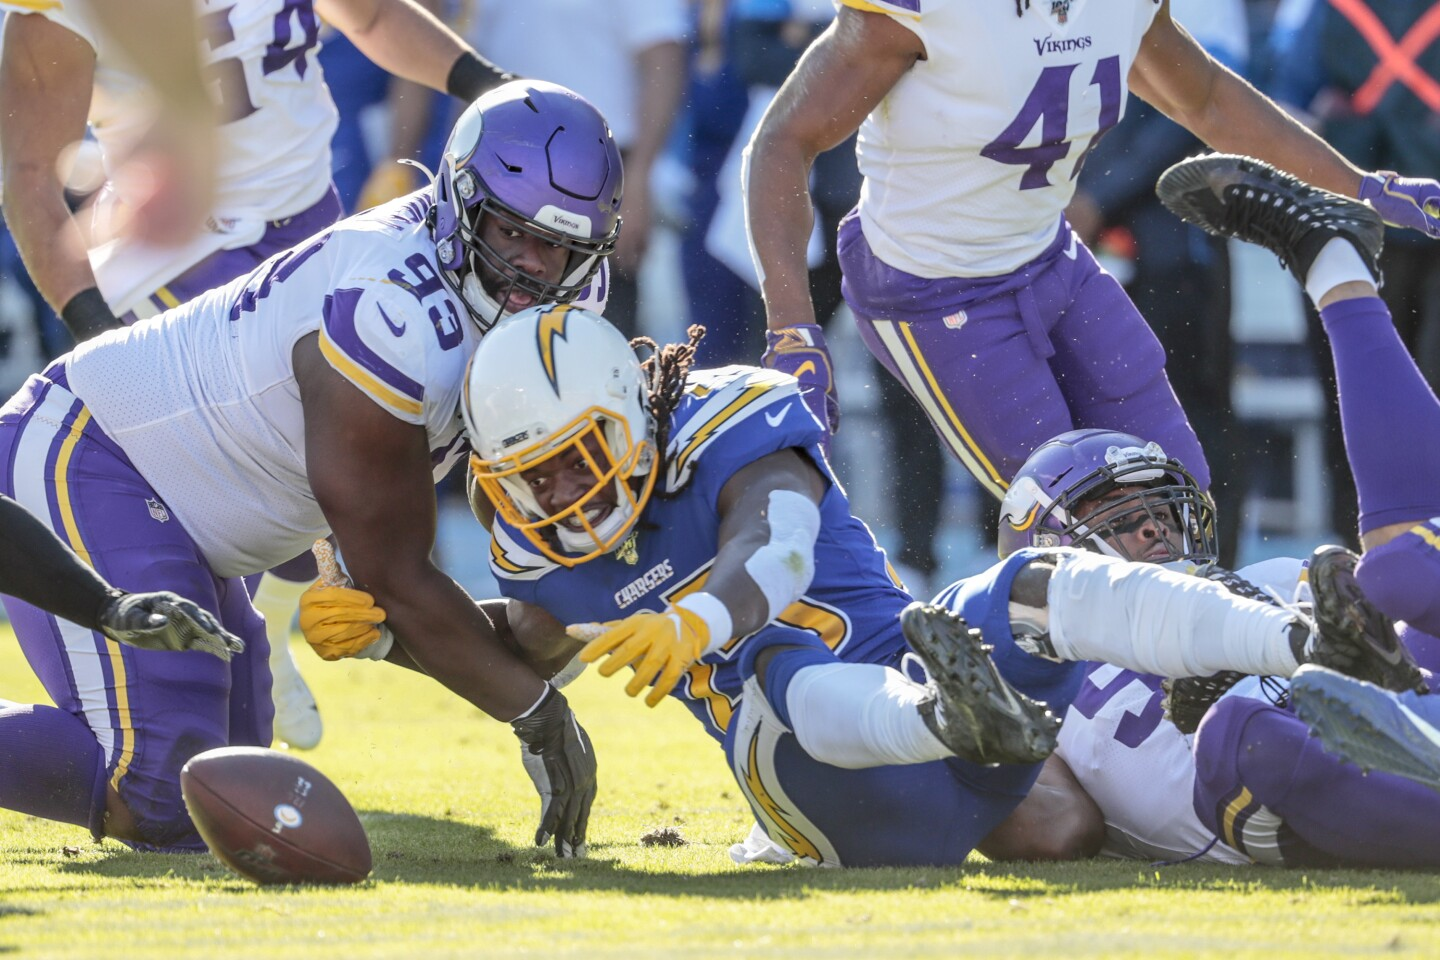 CARSON, CA, SUNDAY, DECEMBER 15, 2019 - Los Angeles Chargers running back Melvin Gordon (25) fumbles the ball during a first quarter drive against the Vikings at Dignity Health Sports Park. (Robert Gauthier/Los Angeles Times)